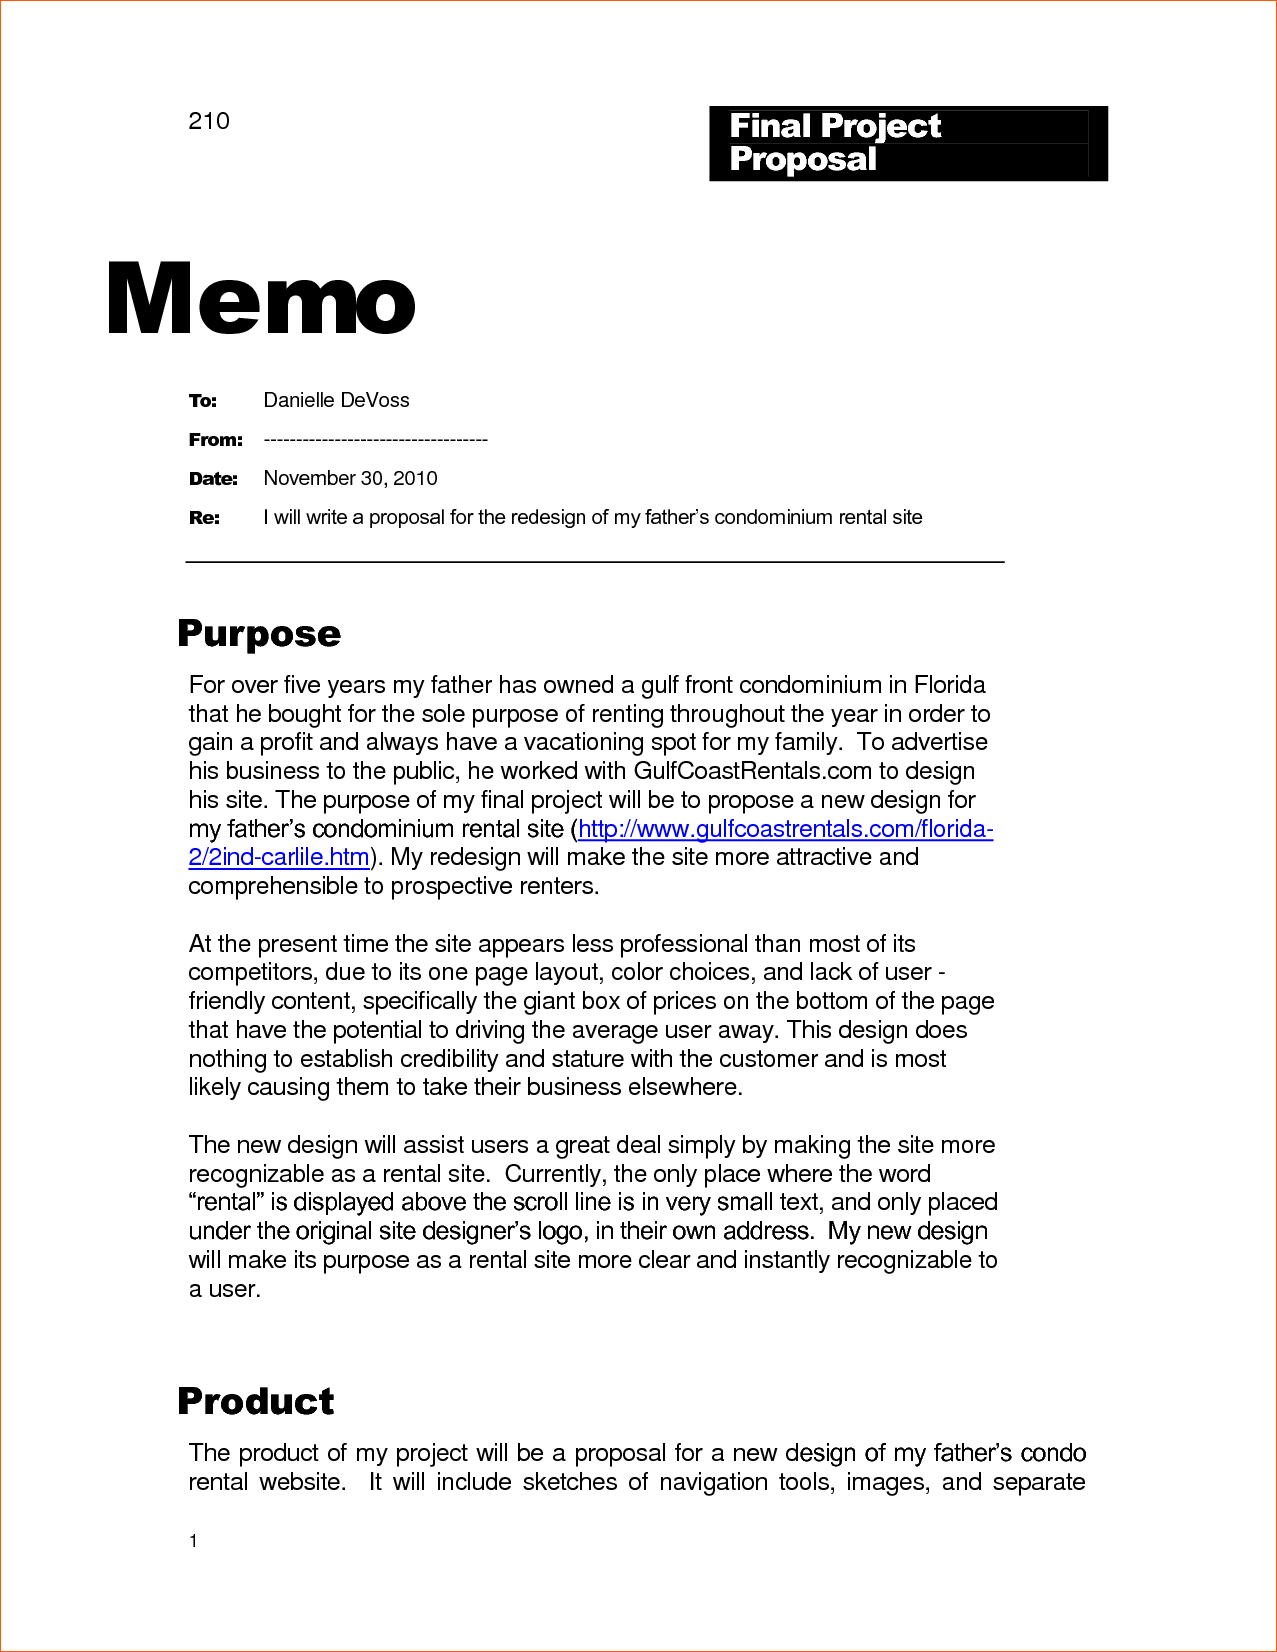 Beautiful Business Memo Sample Formats Close With Any Follow Items Required From The  Recipients Also